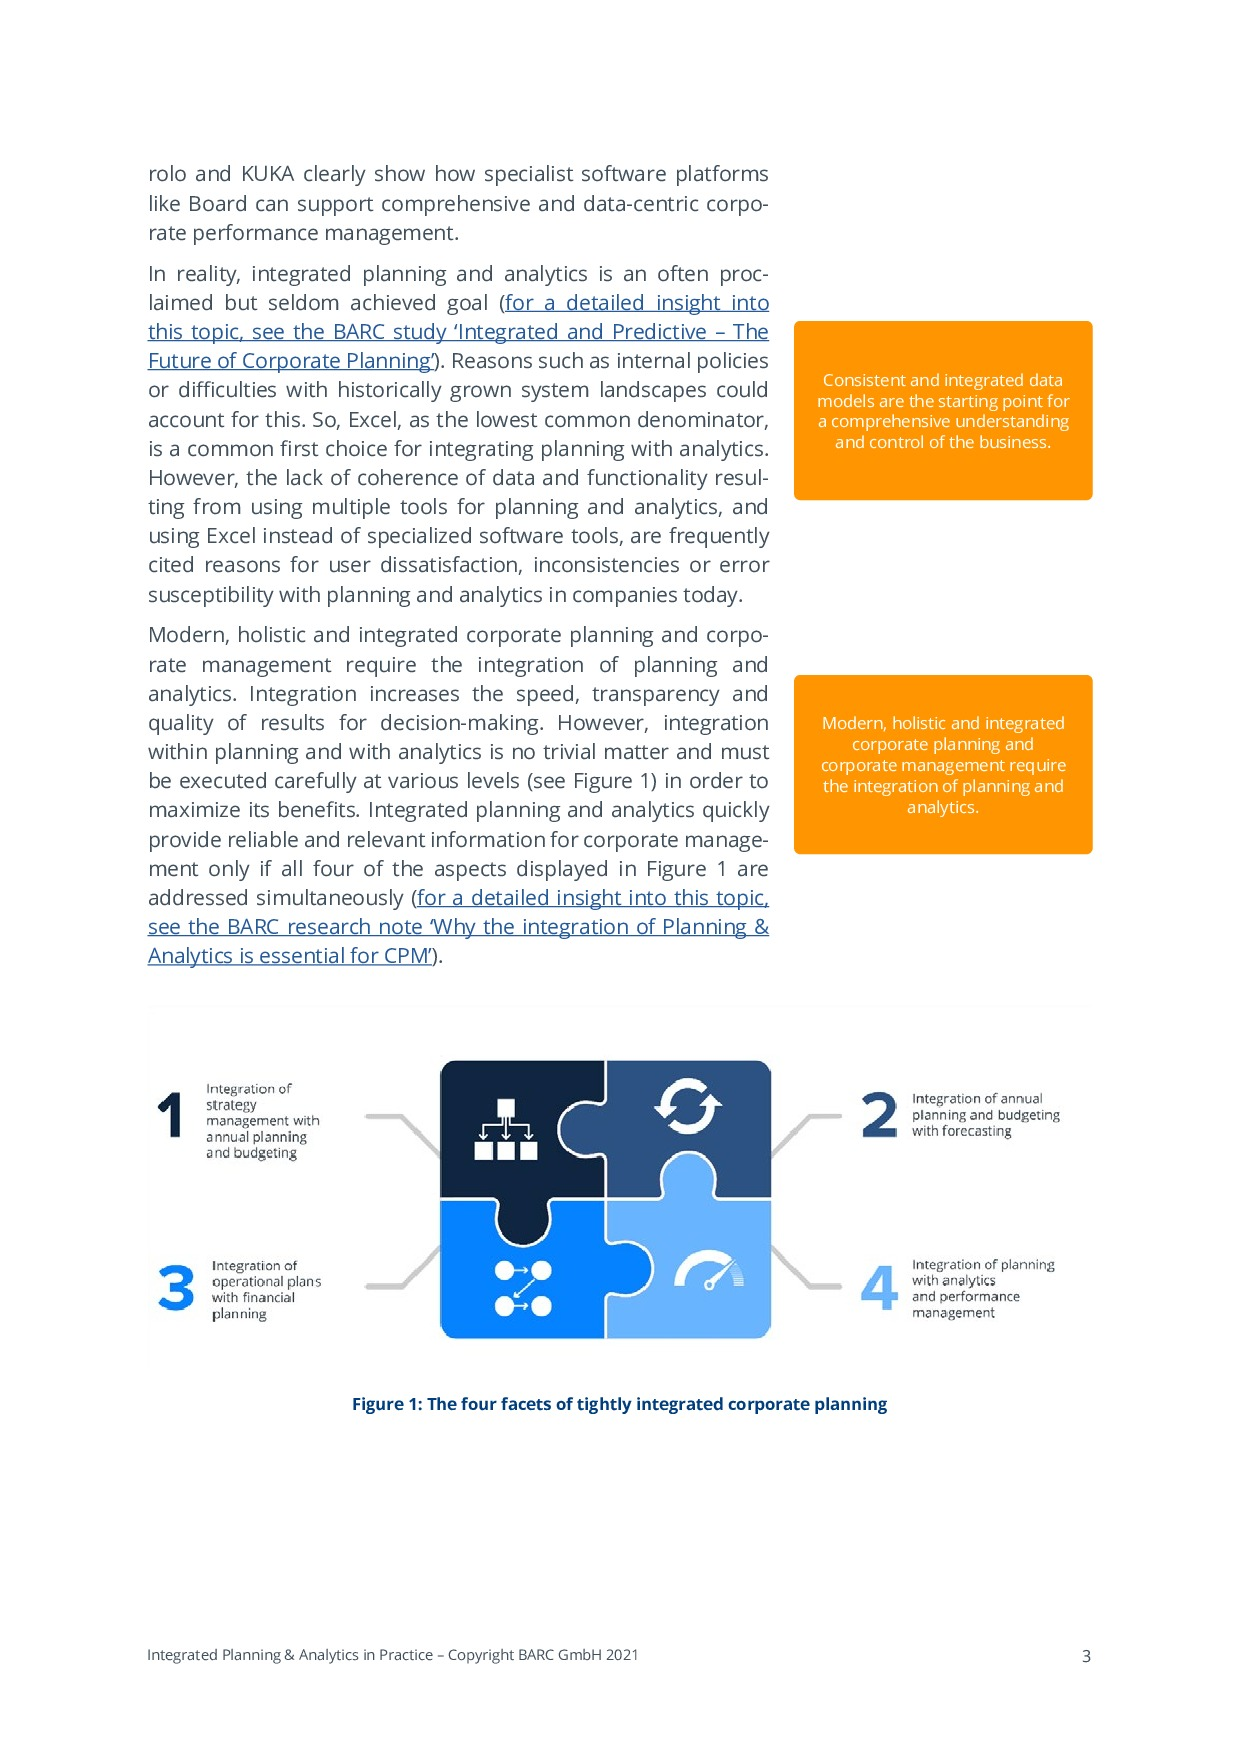 BARC - Integrated Planning & Analytics in Practice   Page 3